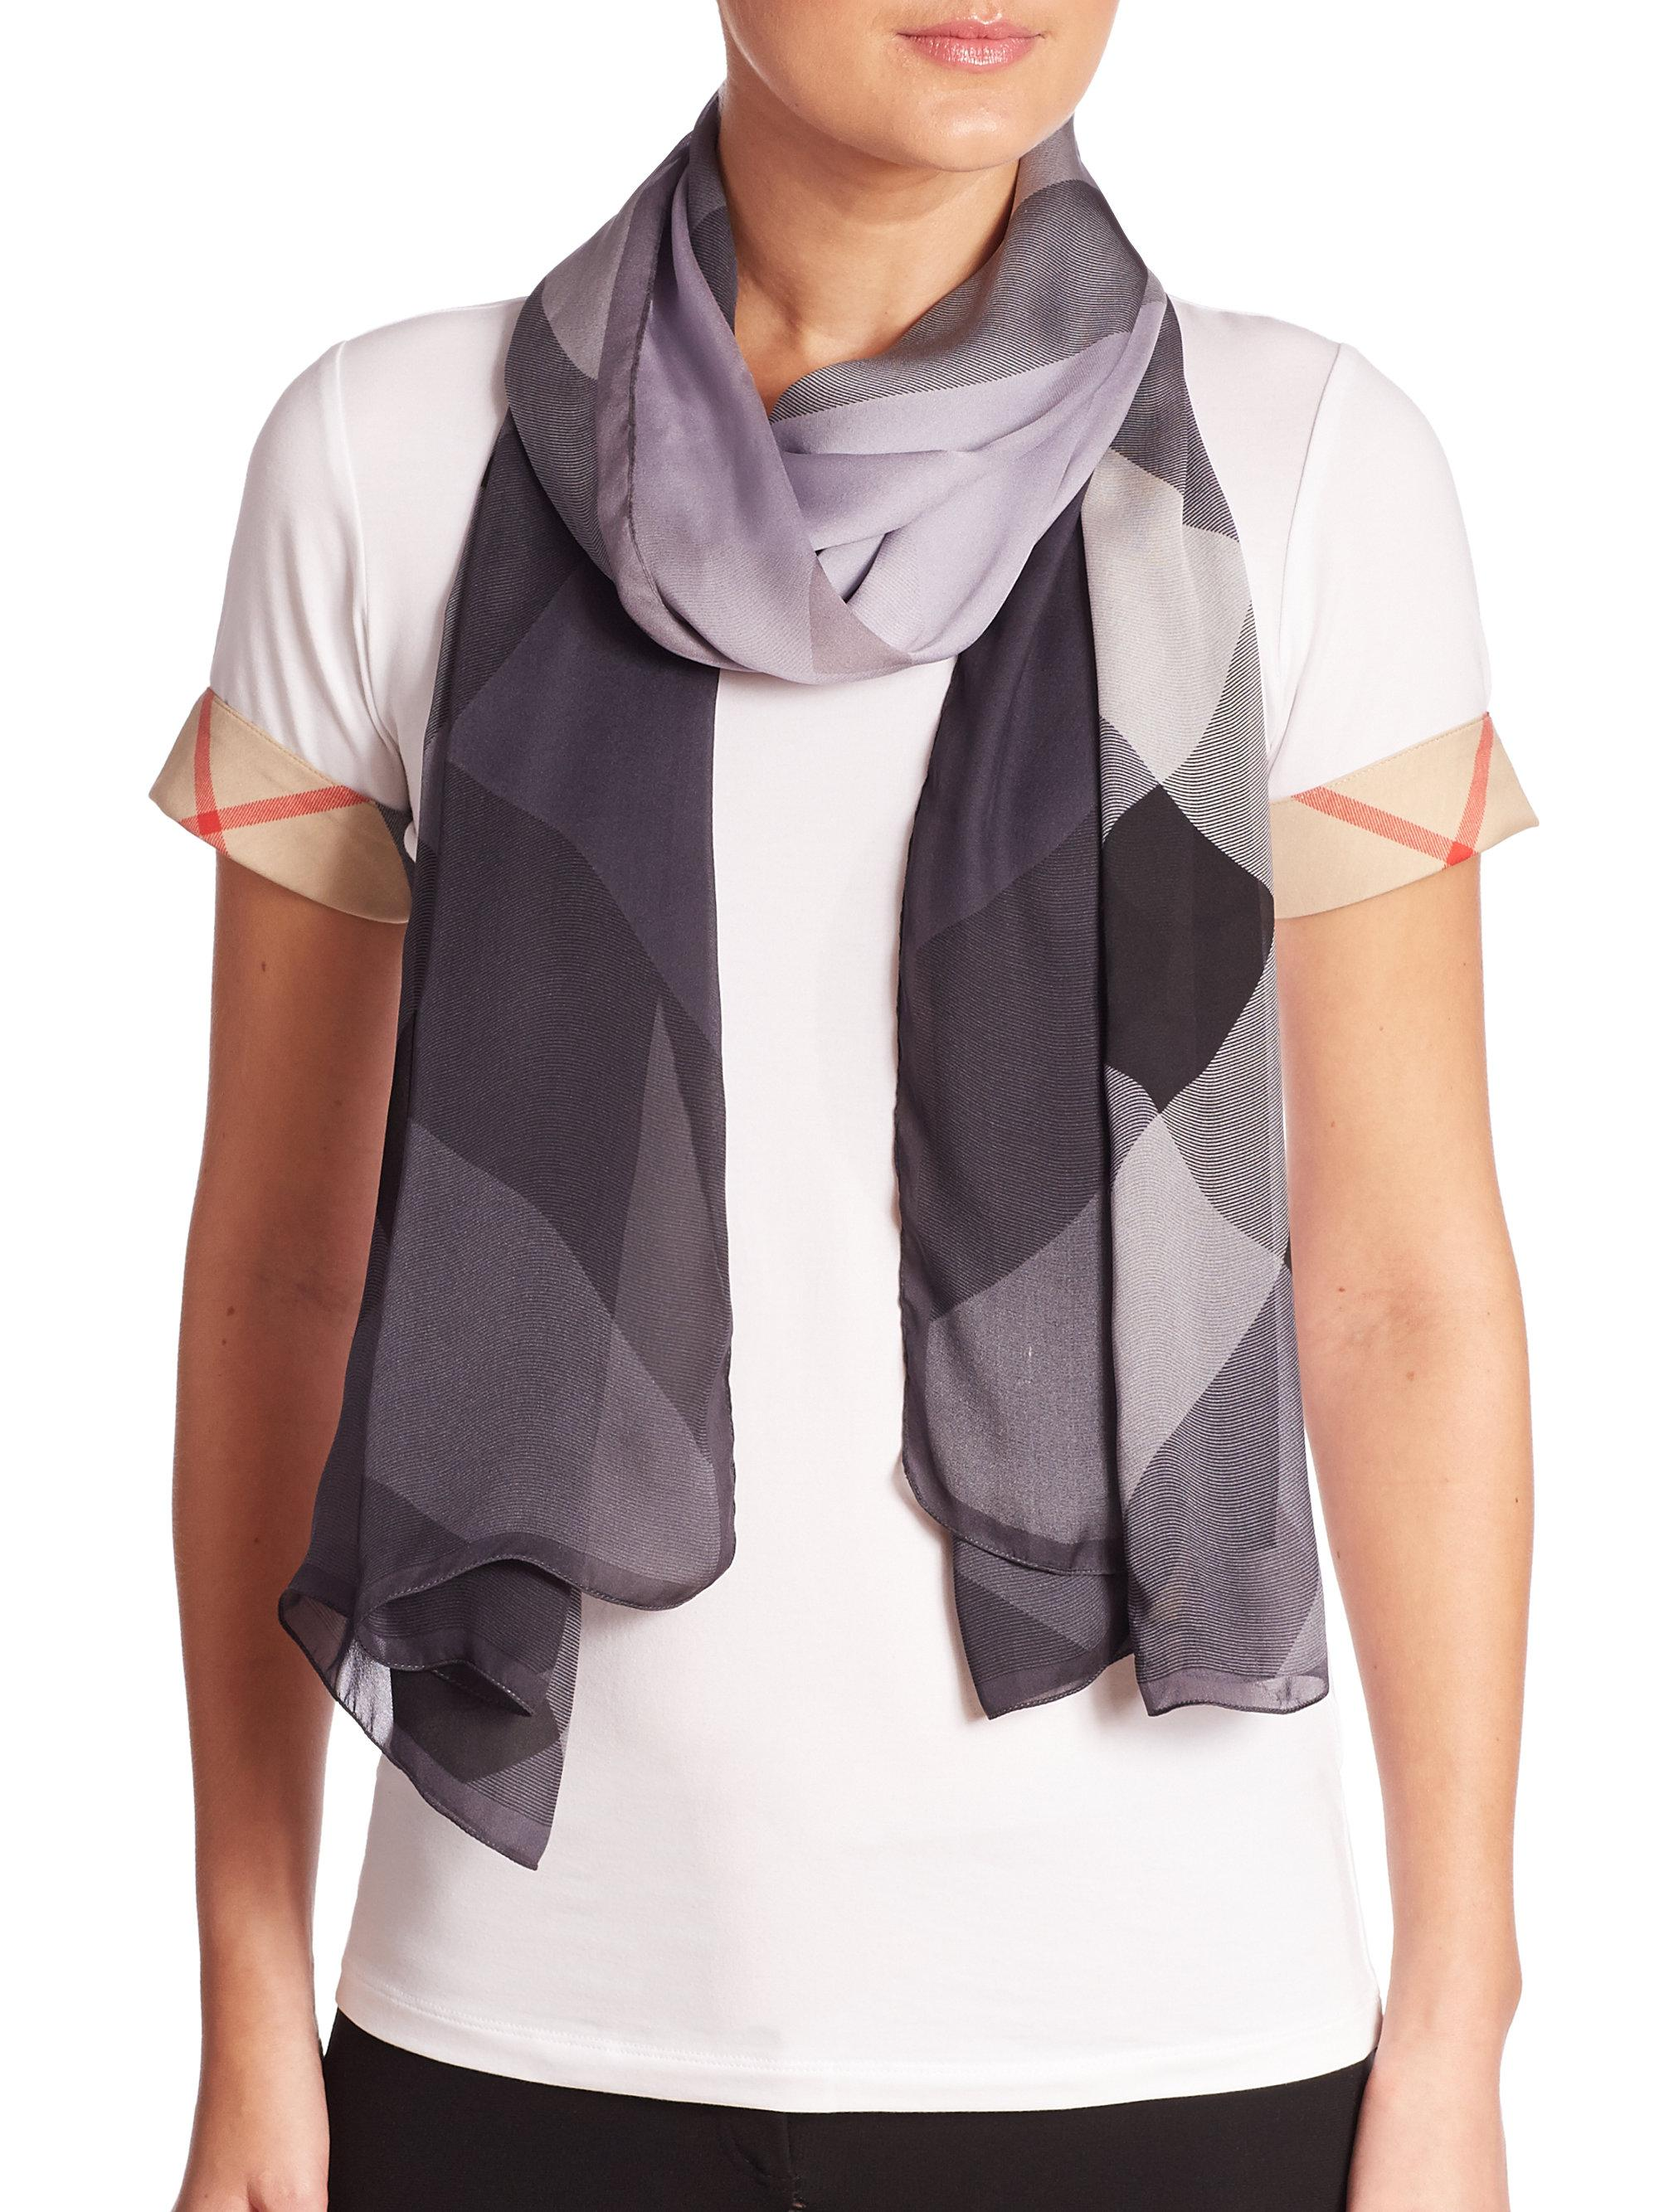 made italian pin pumpz scarf at arrived franco new ferrari fabrics scarves gorgeous including from have